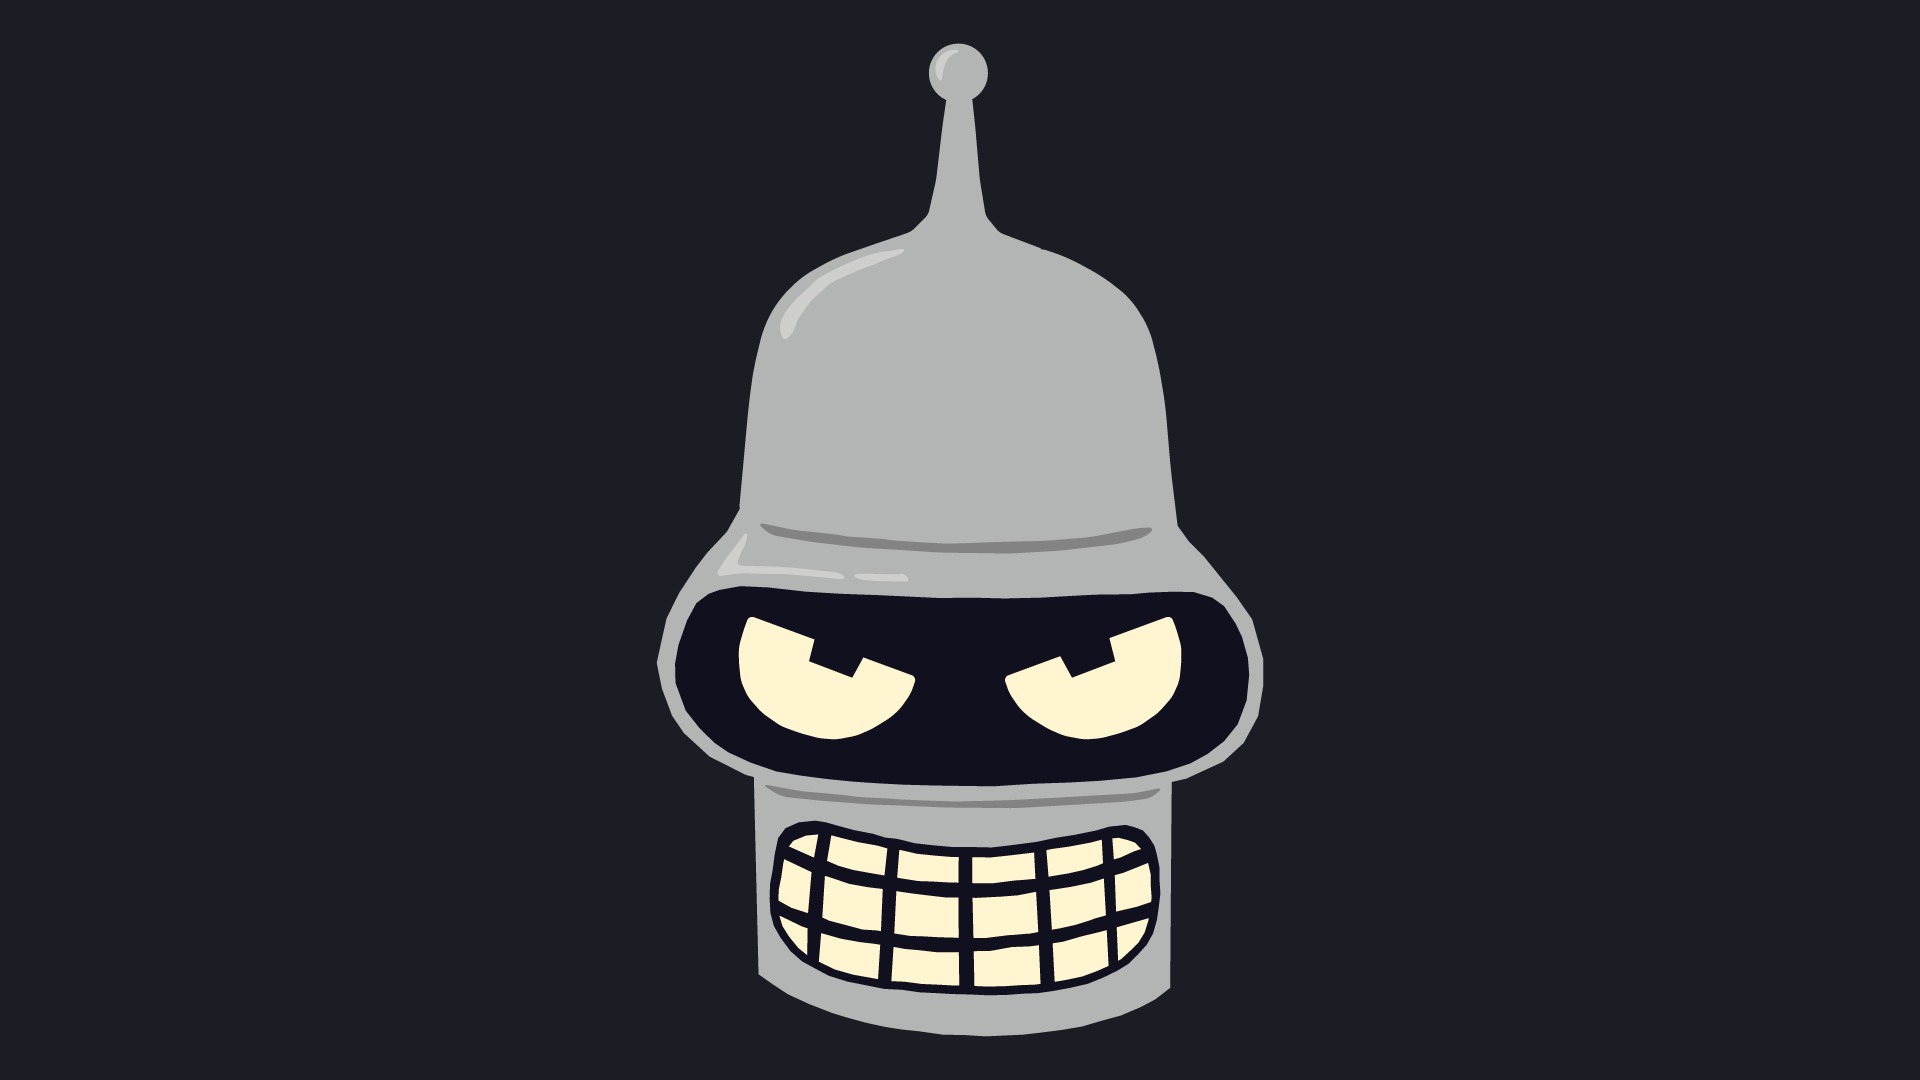 1920x1080  Bender From Futurama Vector Art Bender Futurama